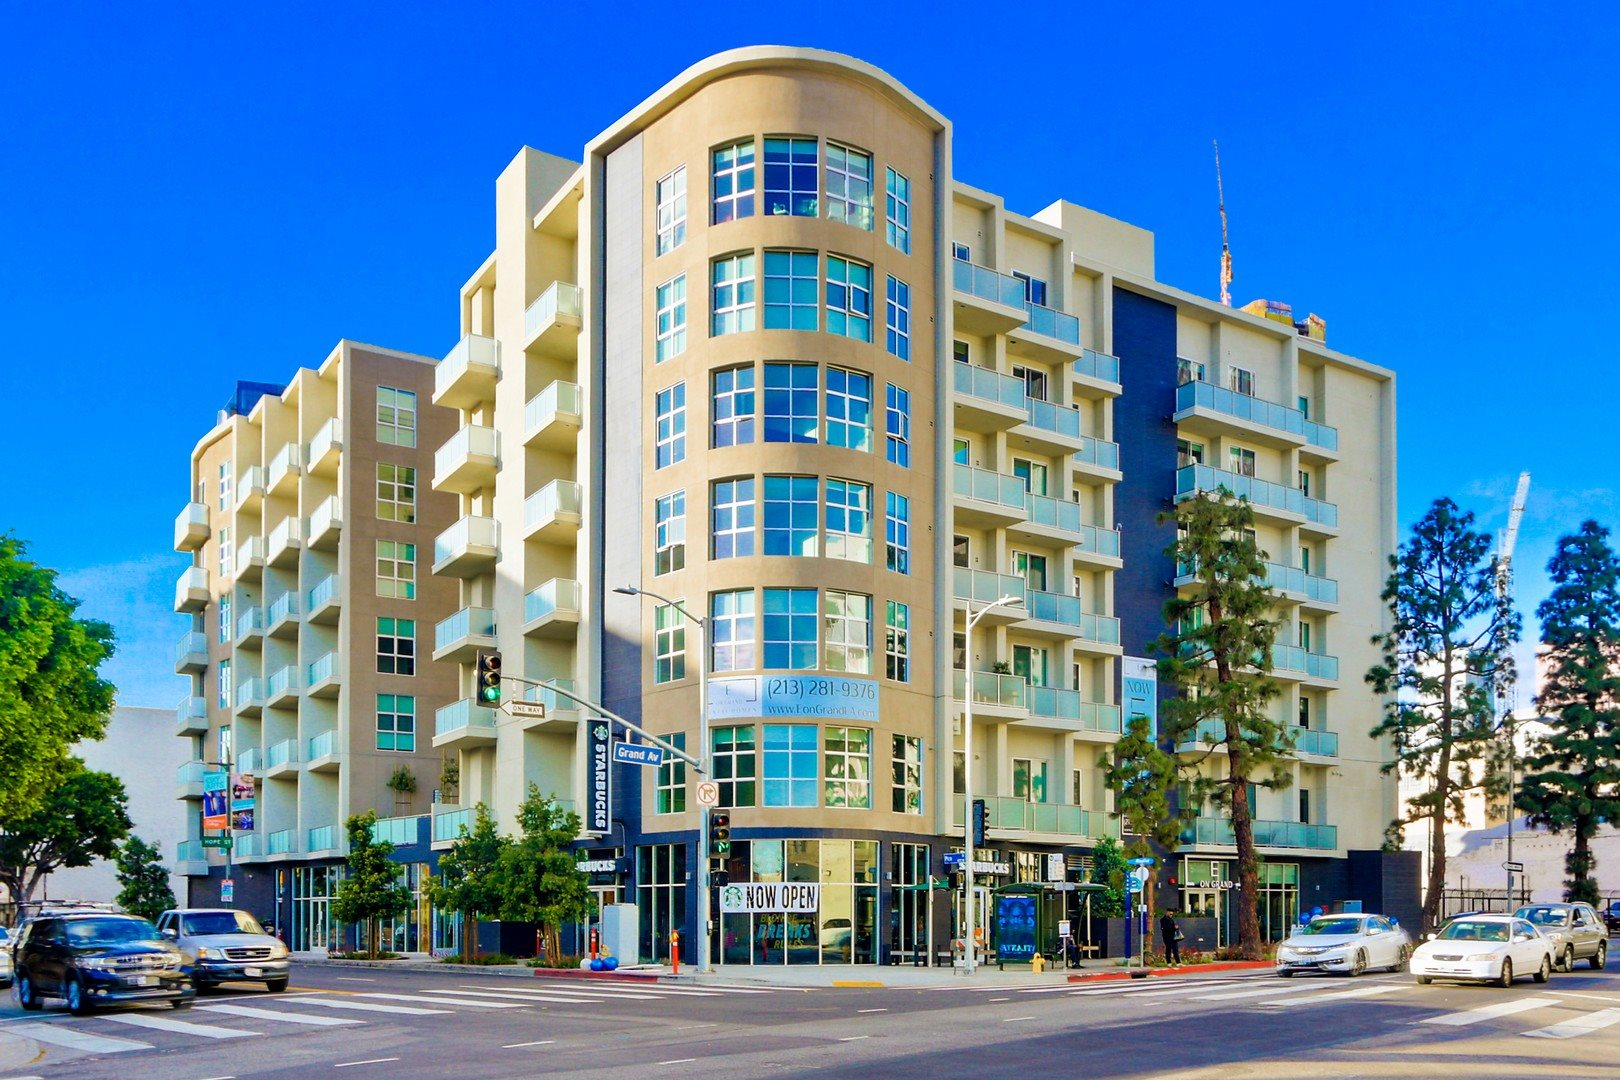 E On Grand Apartments in South Park, Los Angeles -Exterior